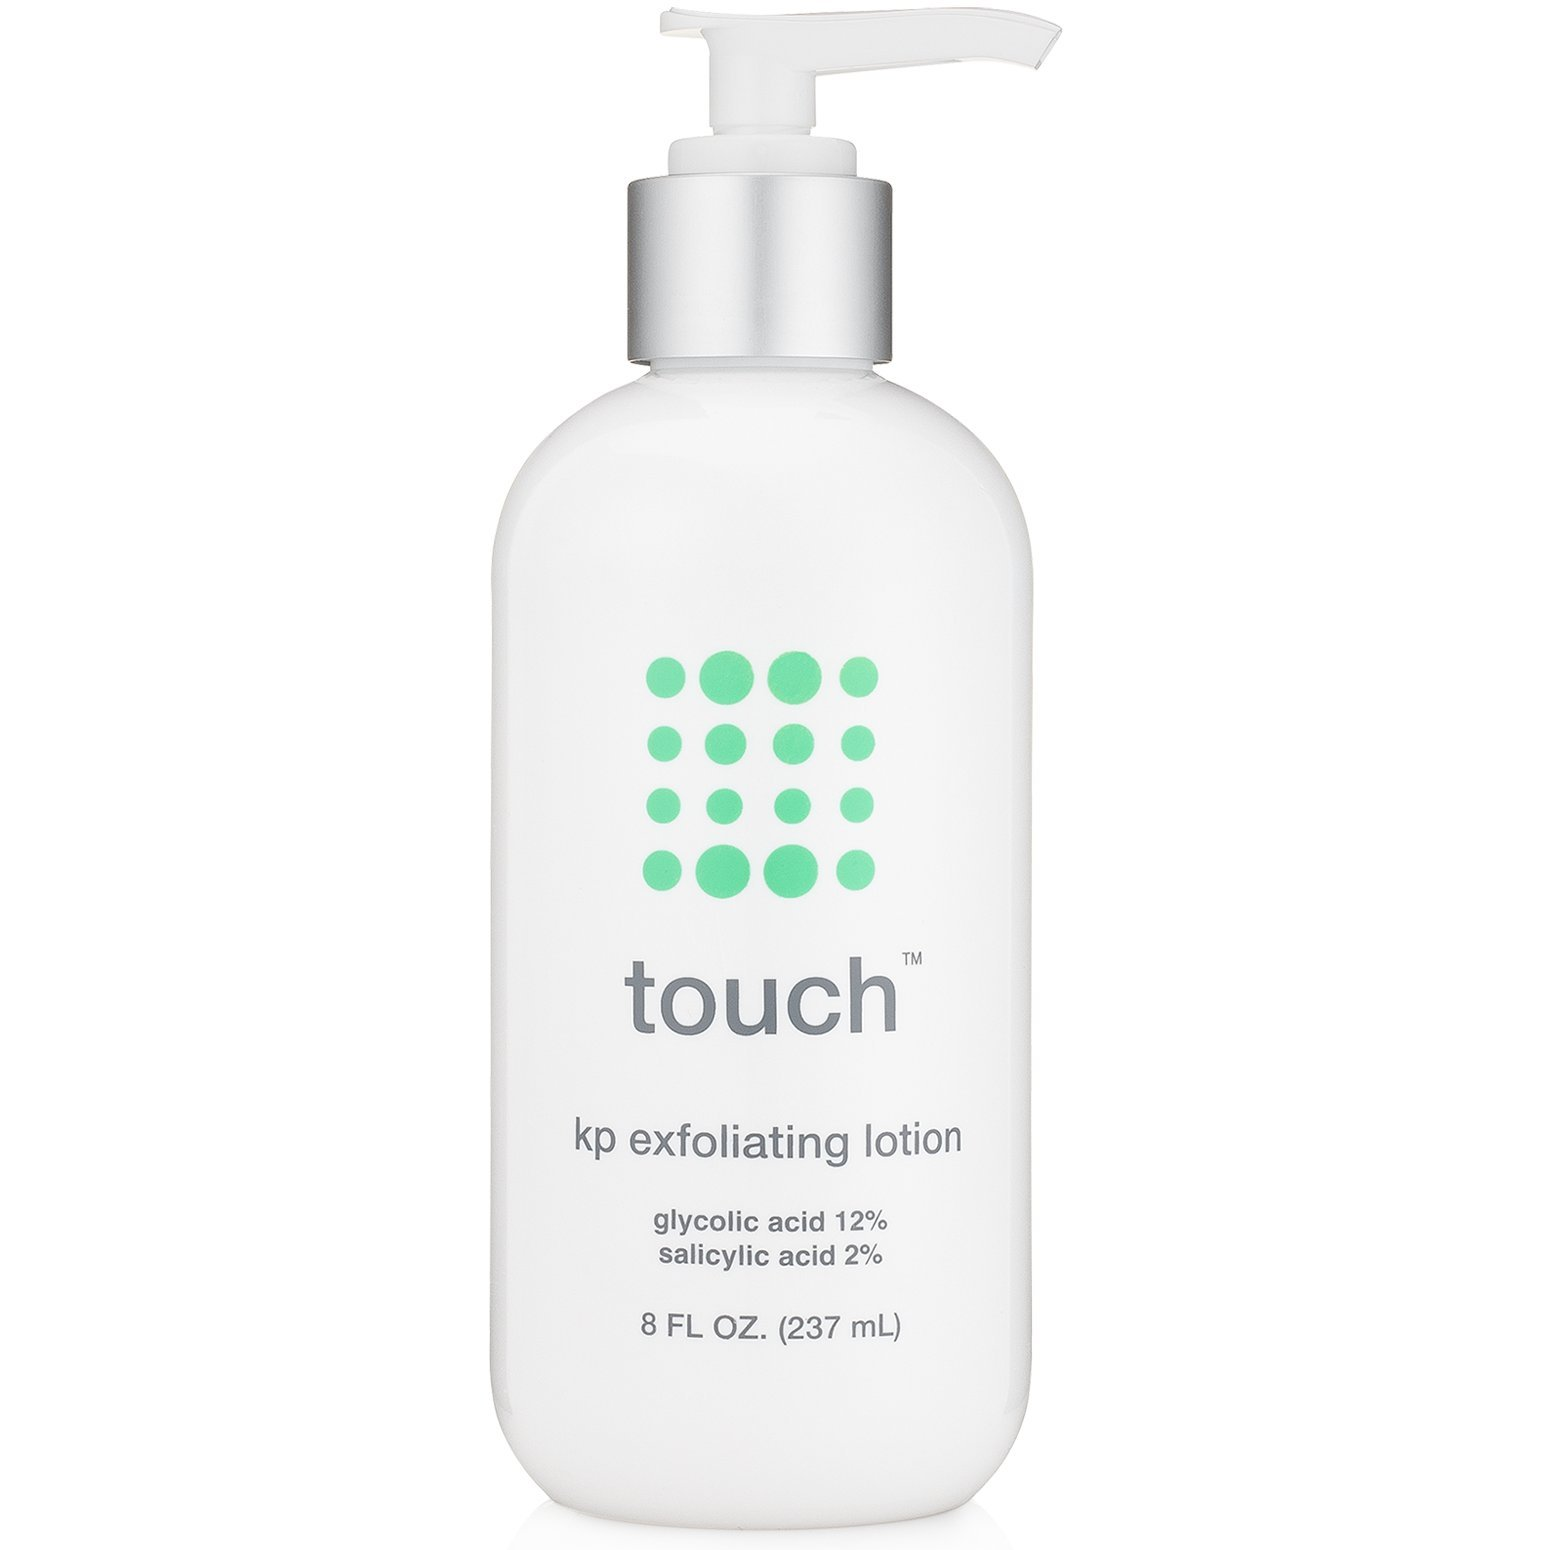 Touch Keratosis Pilaris Treatment with 12% Glycolic Acid & 2% Salicylic Acid - AHA & BHA Exfoliating Rough & Bumpy Skin Body Lotion - Moisturizing Cream Gets Rid Of Redness, KP, Body Acne - 8 Ounce by TOUCH